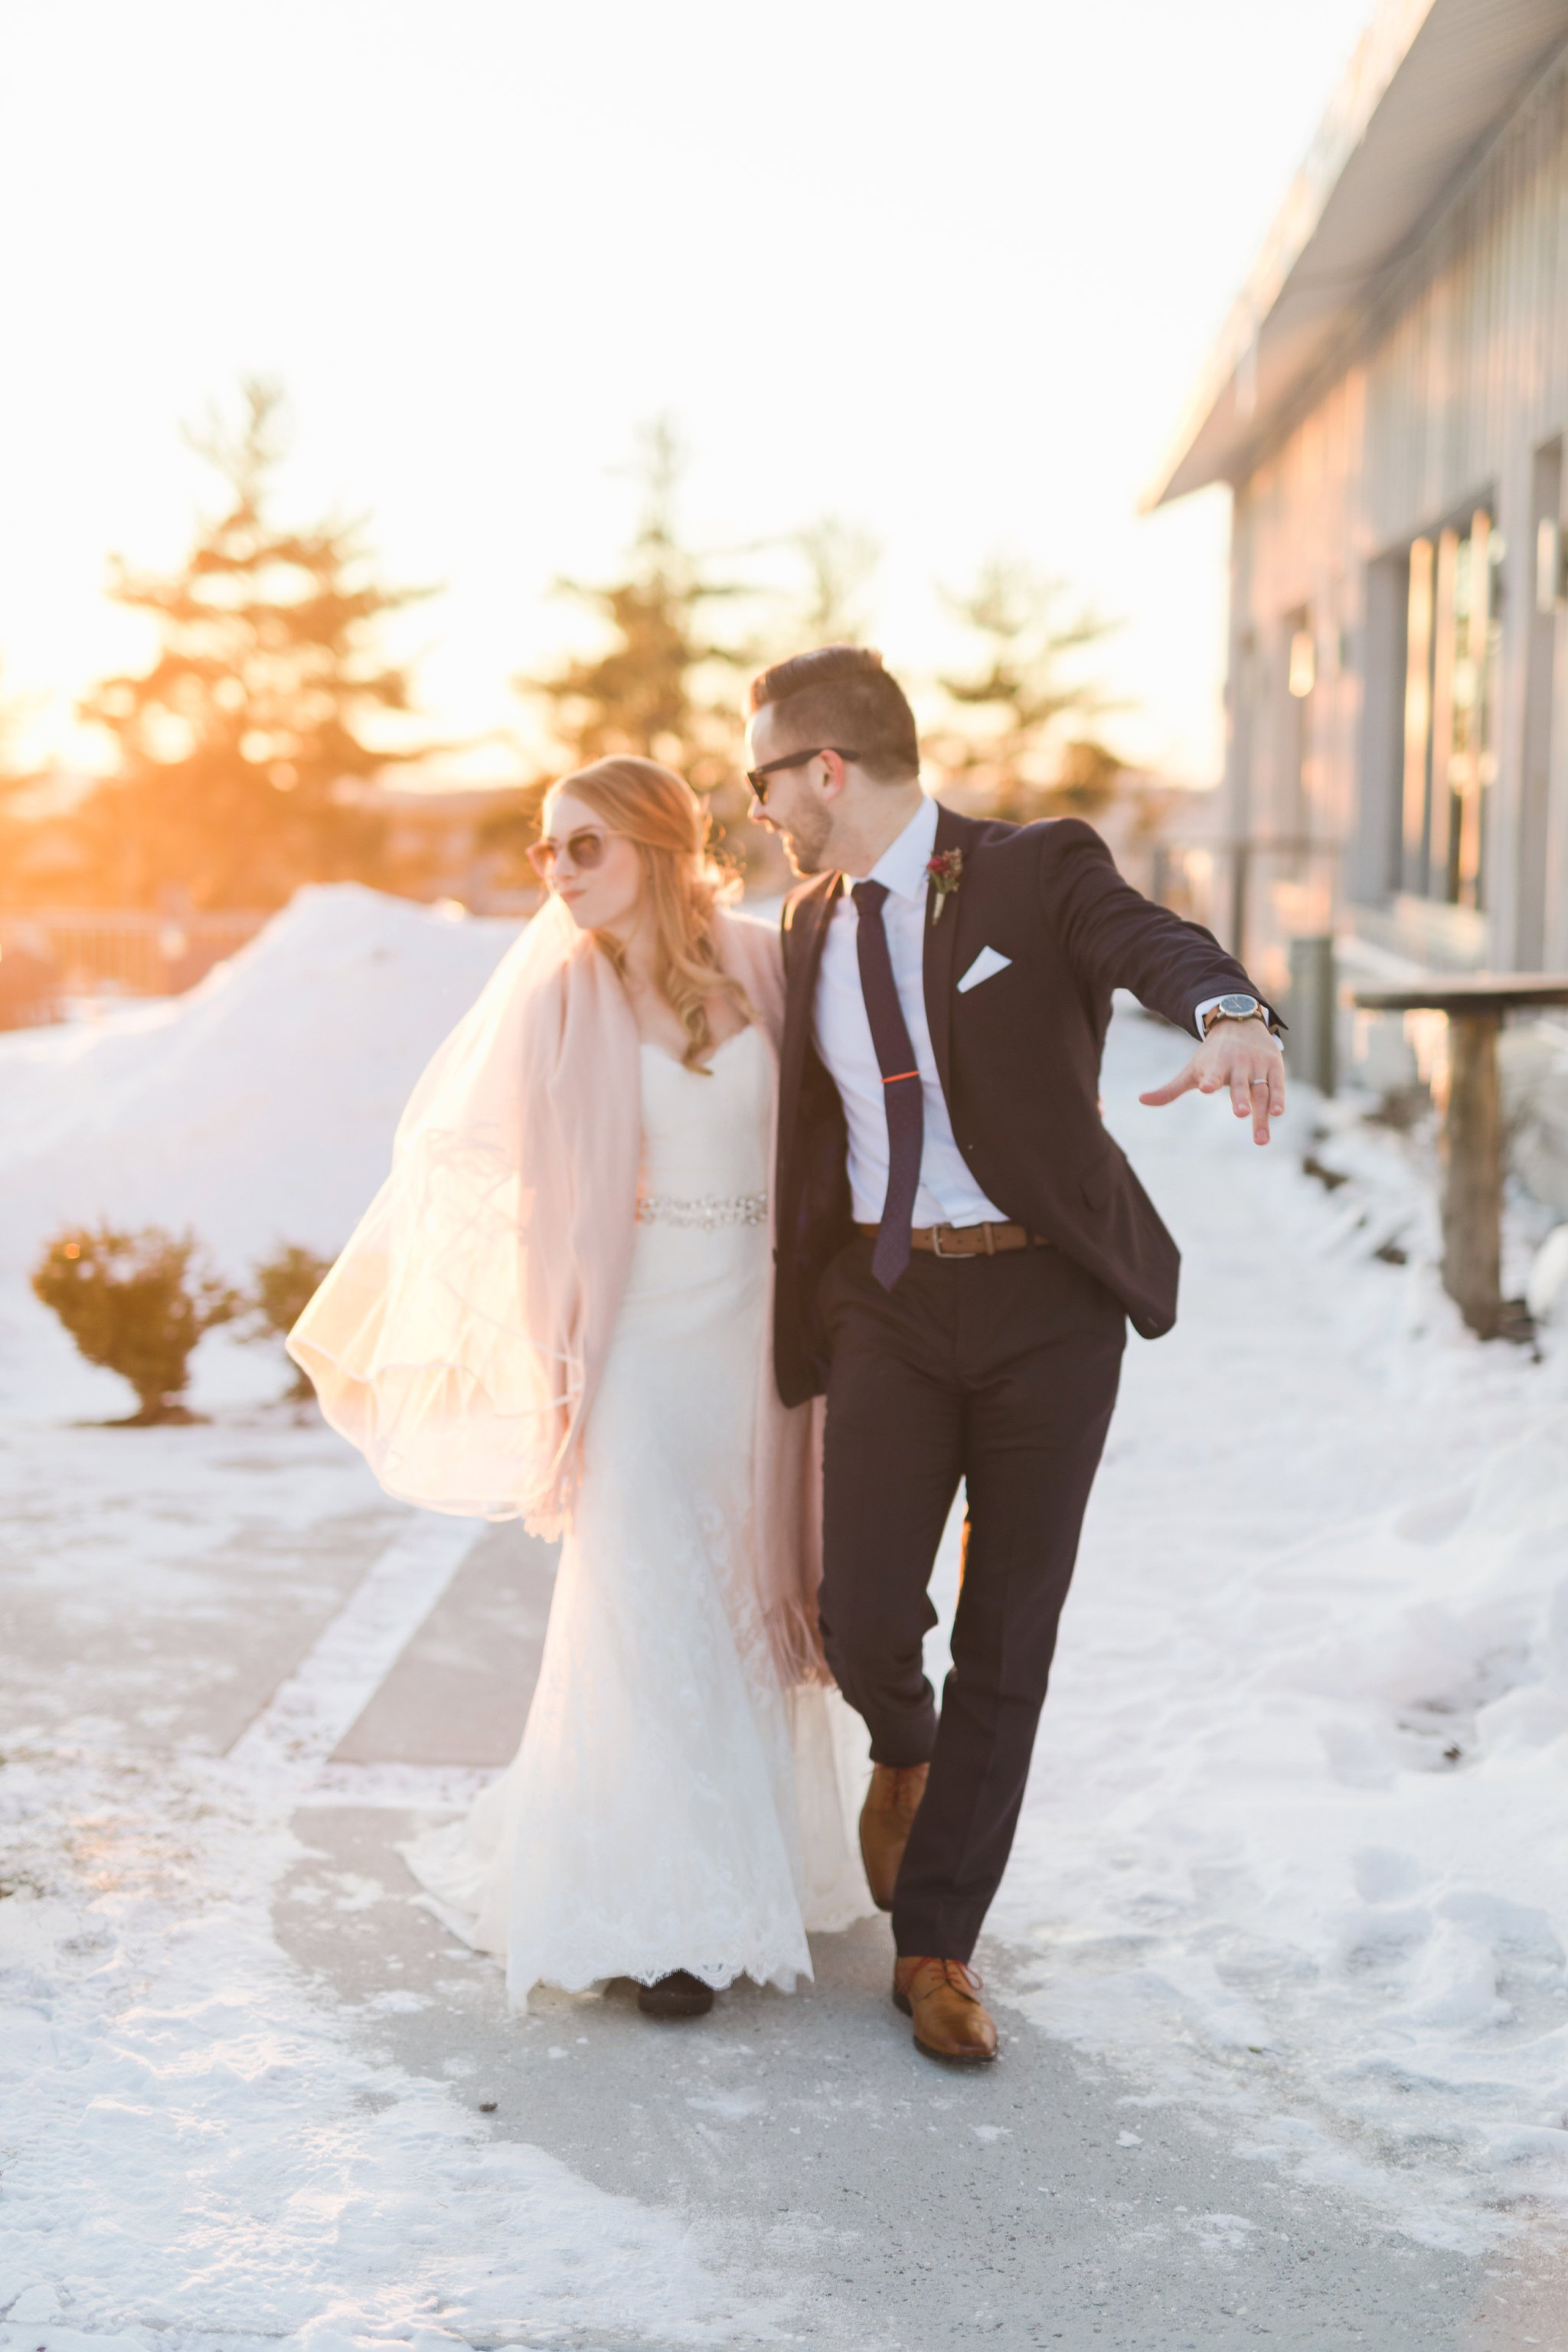 Bride and groom sunglasses at the Winter wedding at Le Belvedere